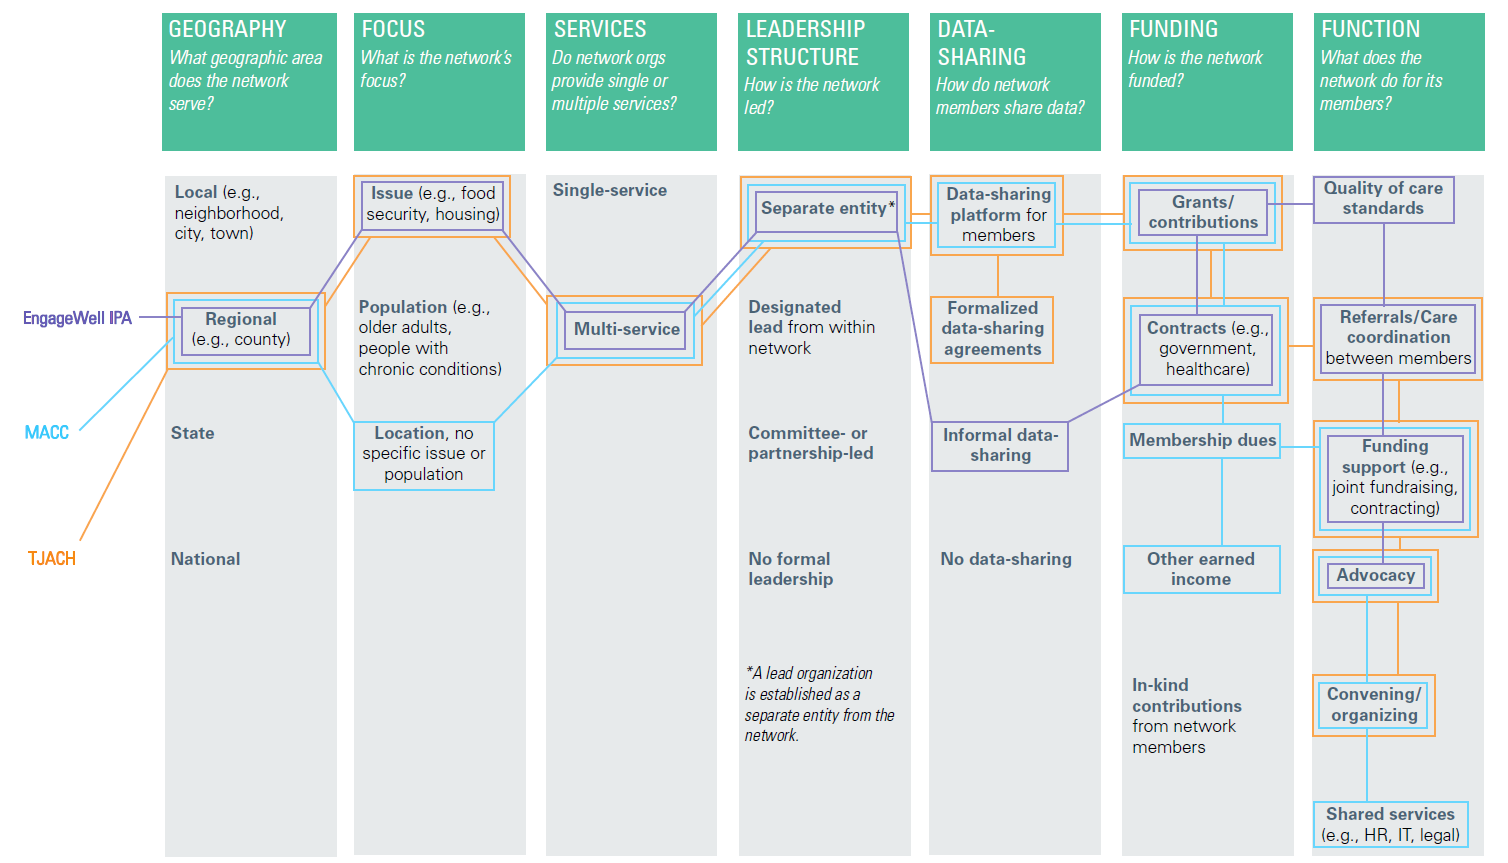 Snapshot of CBO Networks